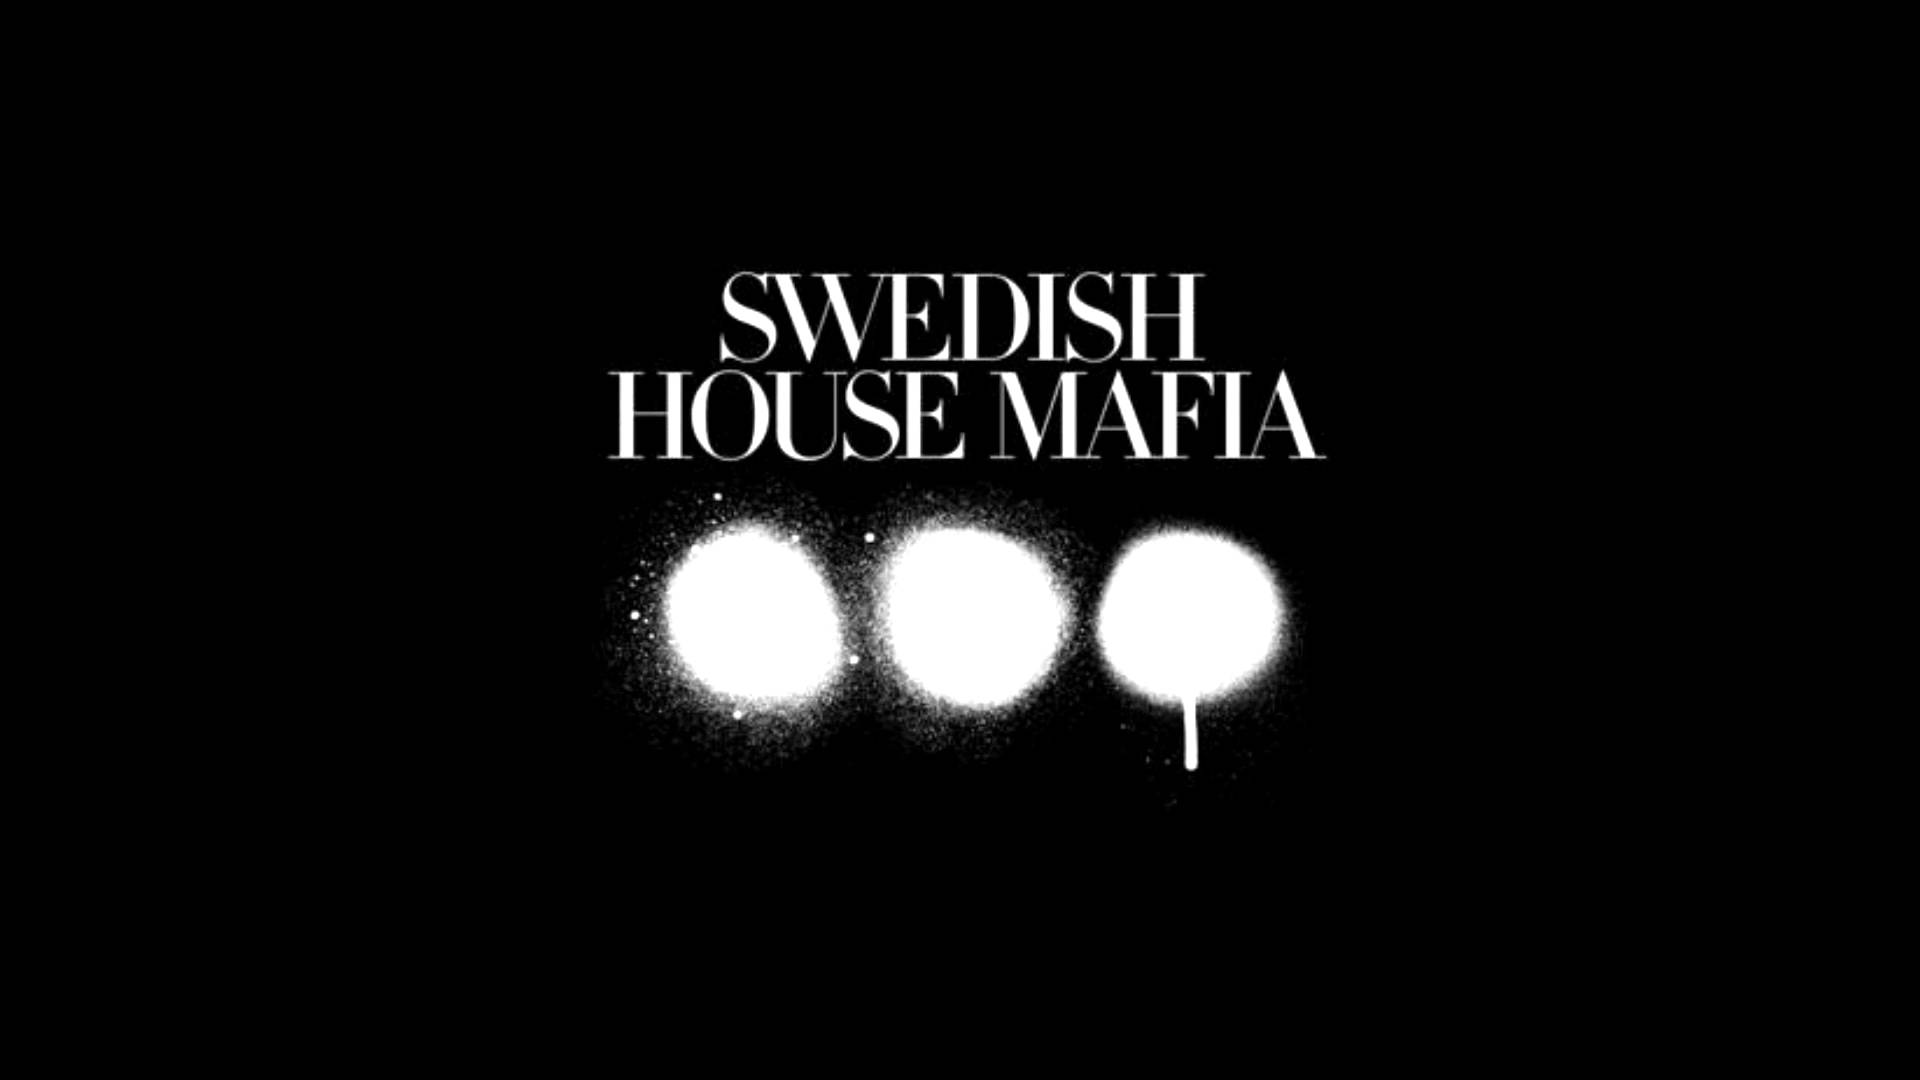 Swedish House Mafia Wallpapers Wallpaper Cave